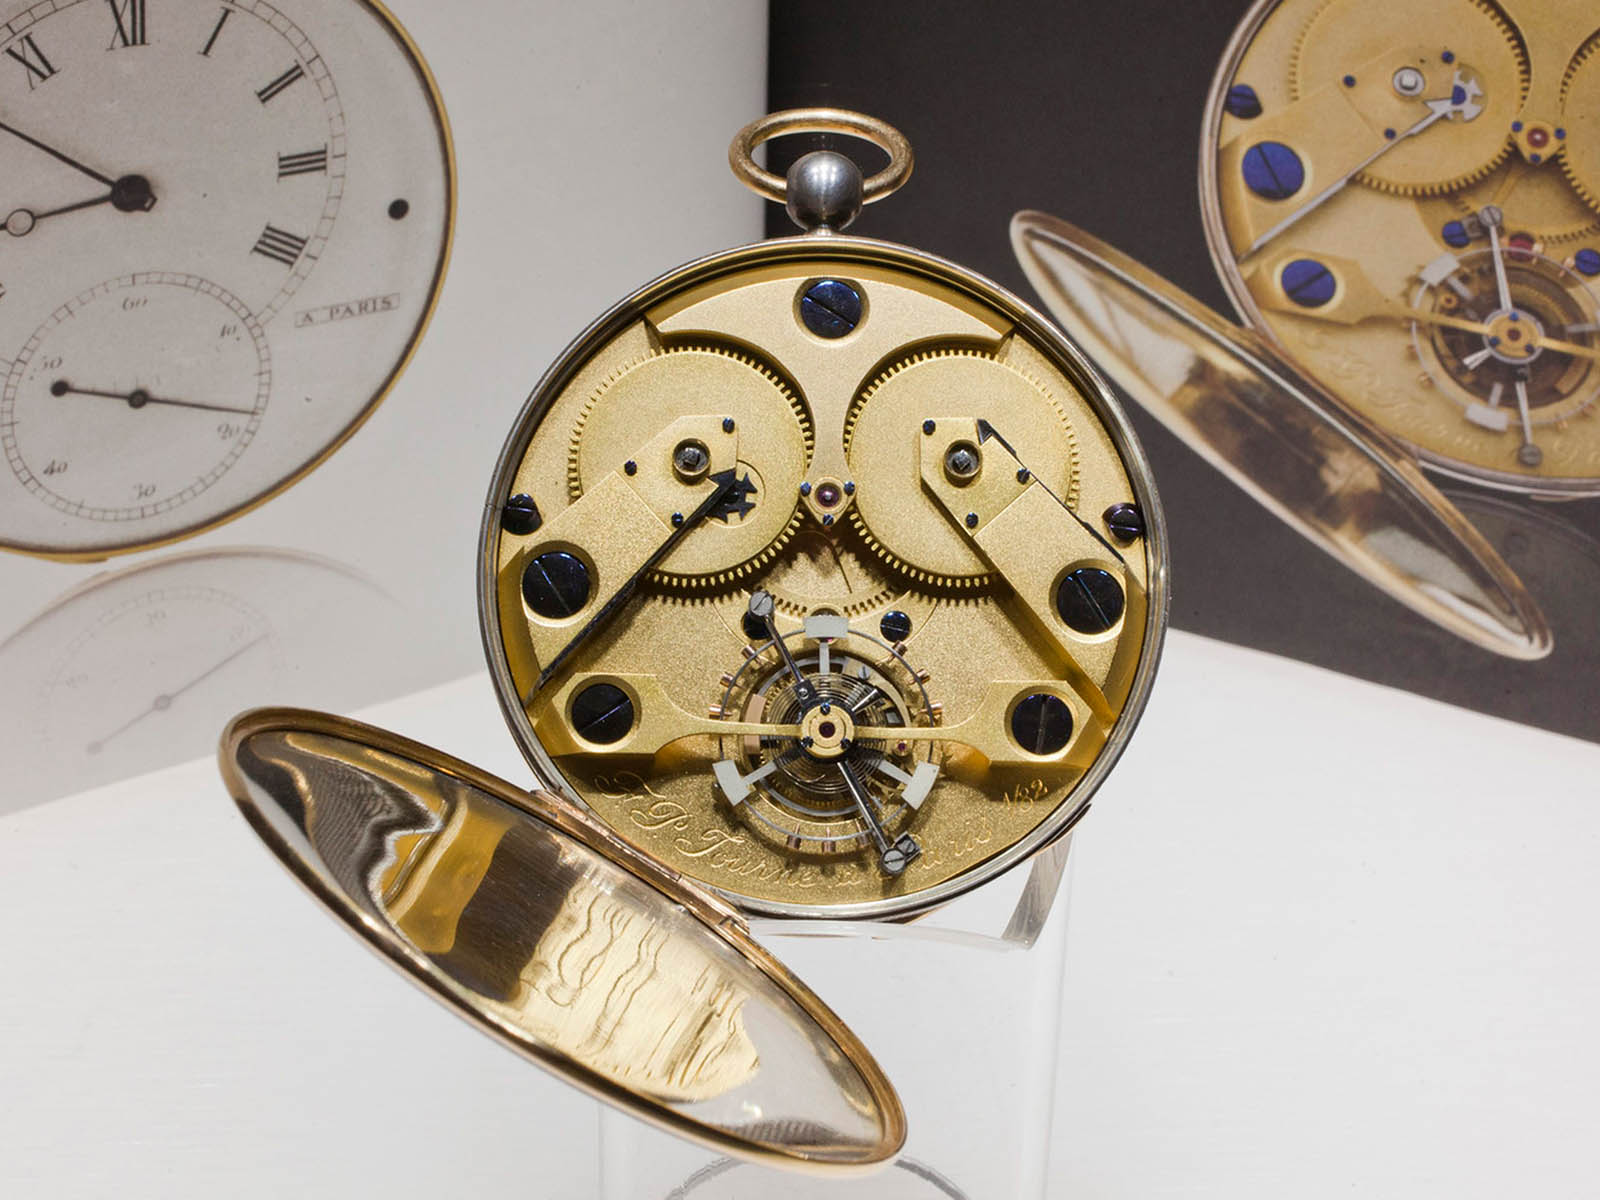 f-p-journe-firs-tourbillon-pocket-watch.jpg